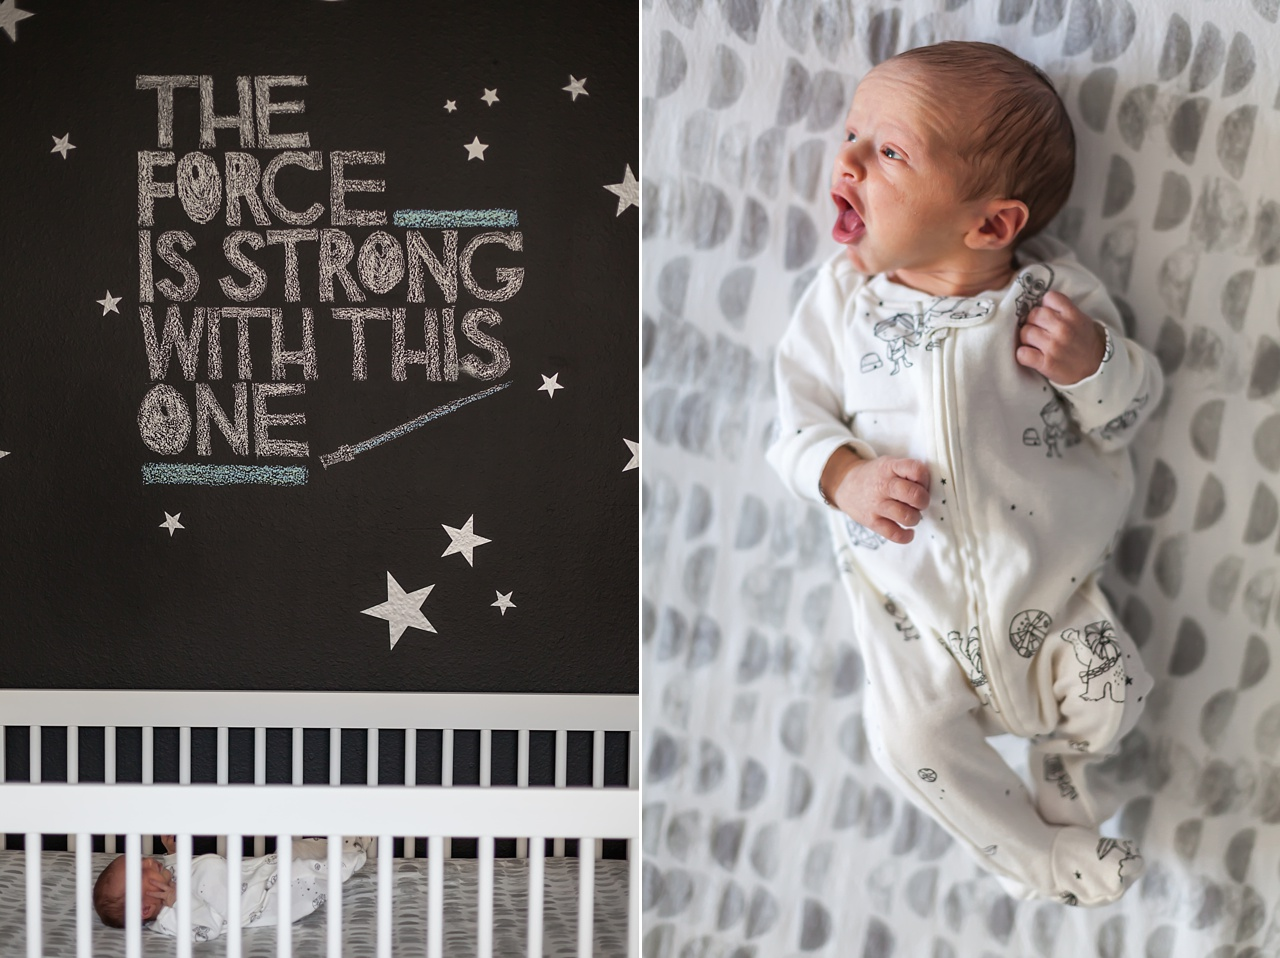 star wars themed nursery with infant baby boy